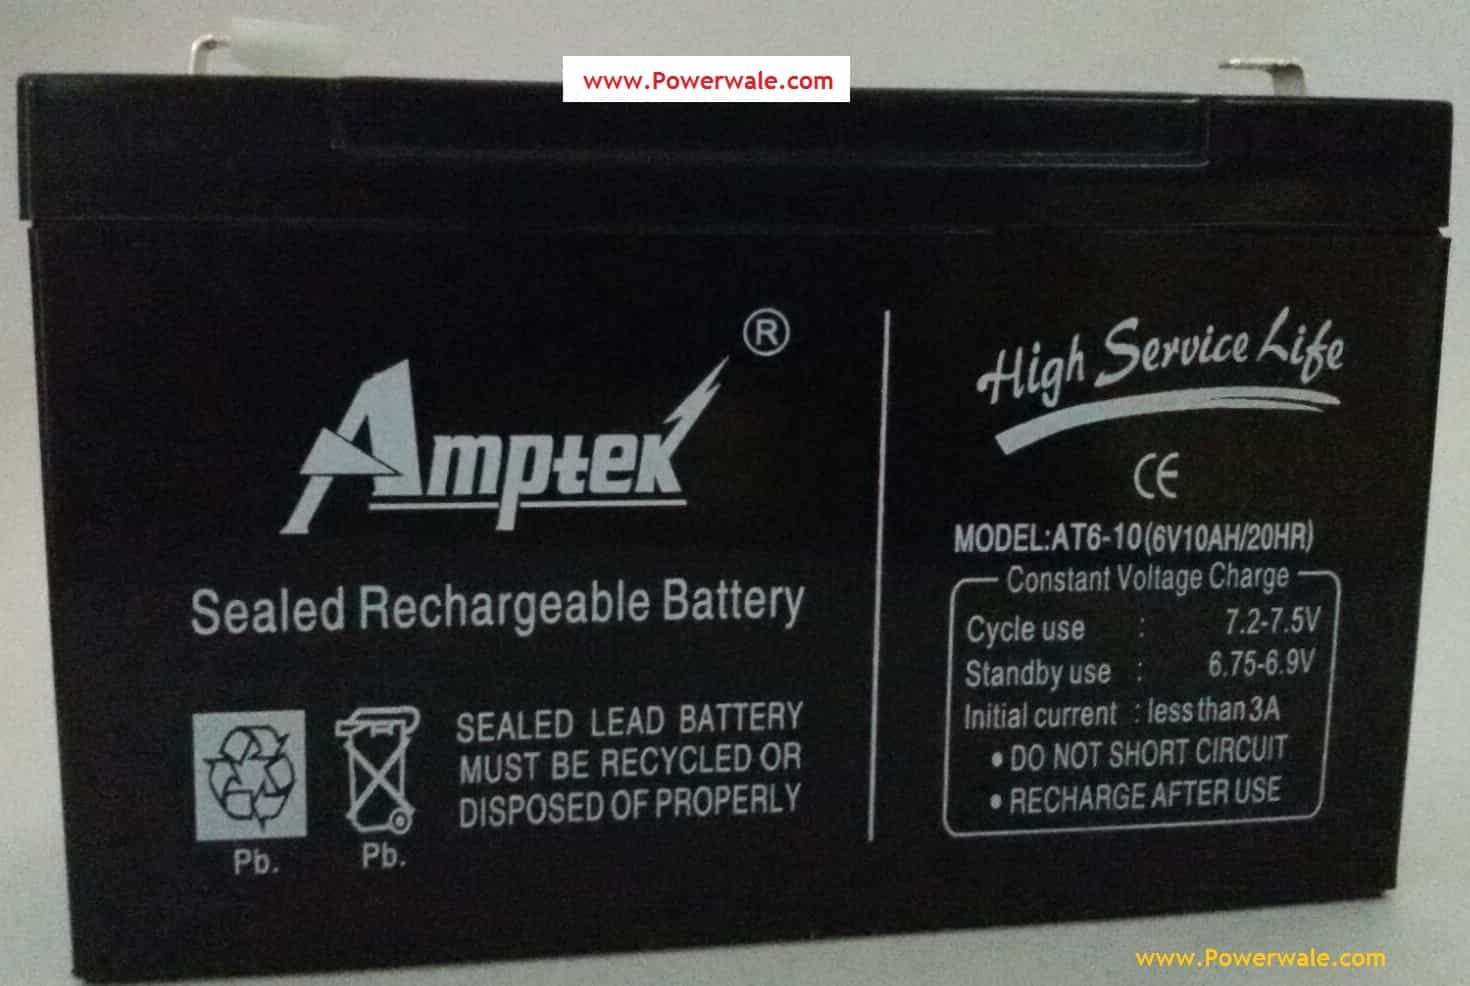 Amptek 6V 7Ah Rechargeable Sealed Battery For Ups Toys Solar etc